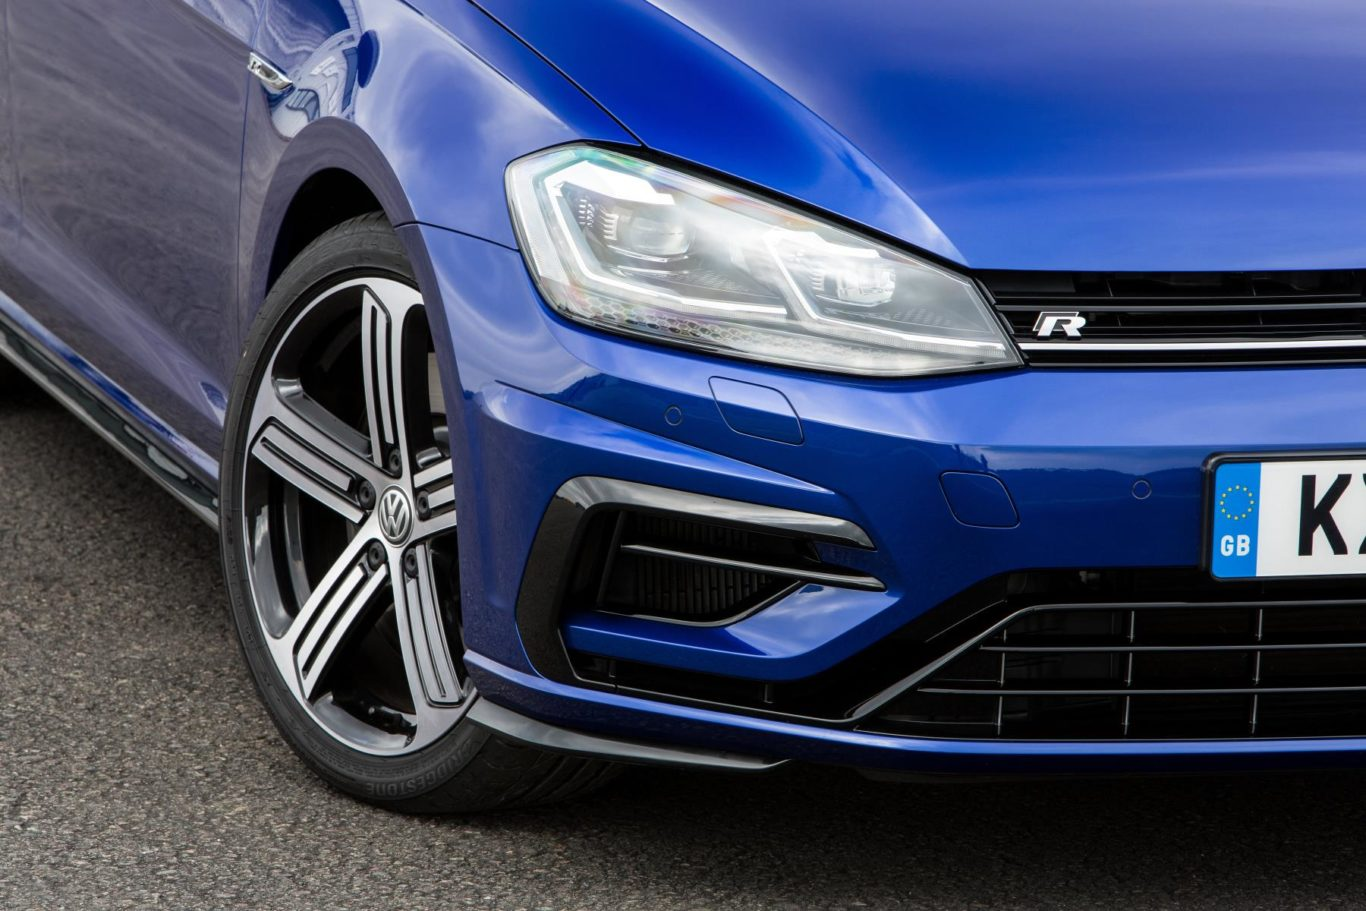 The Golf R sits on 18-inch alloy wheels as standard, though 19-inch versions are available as an optional extra